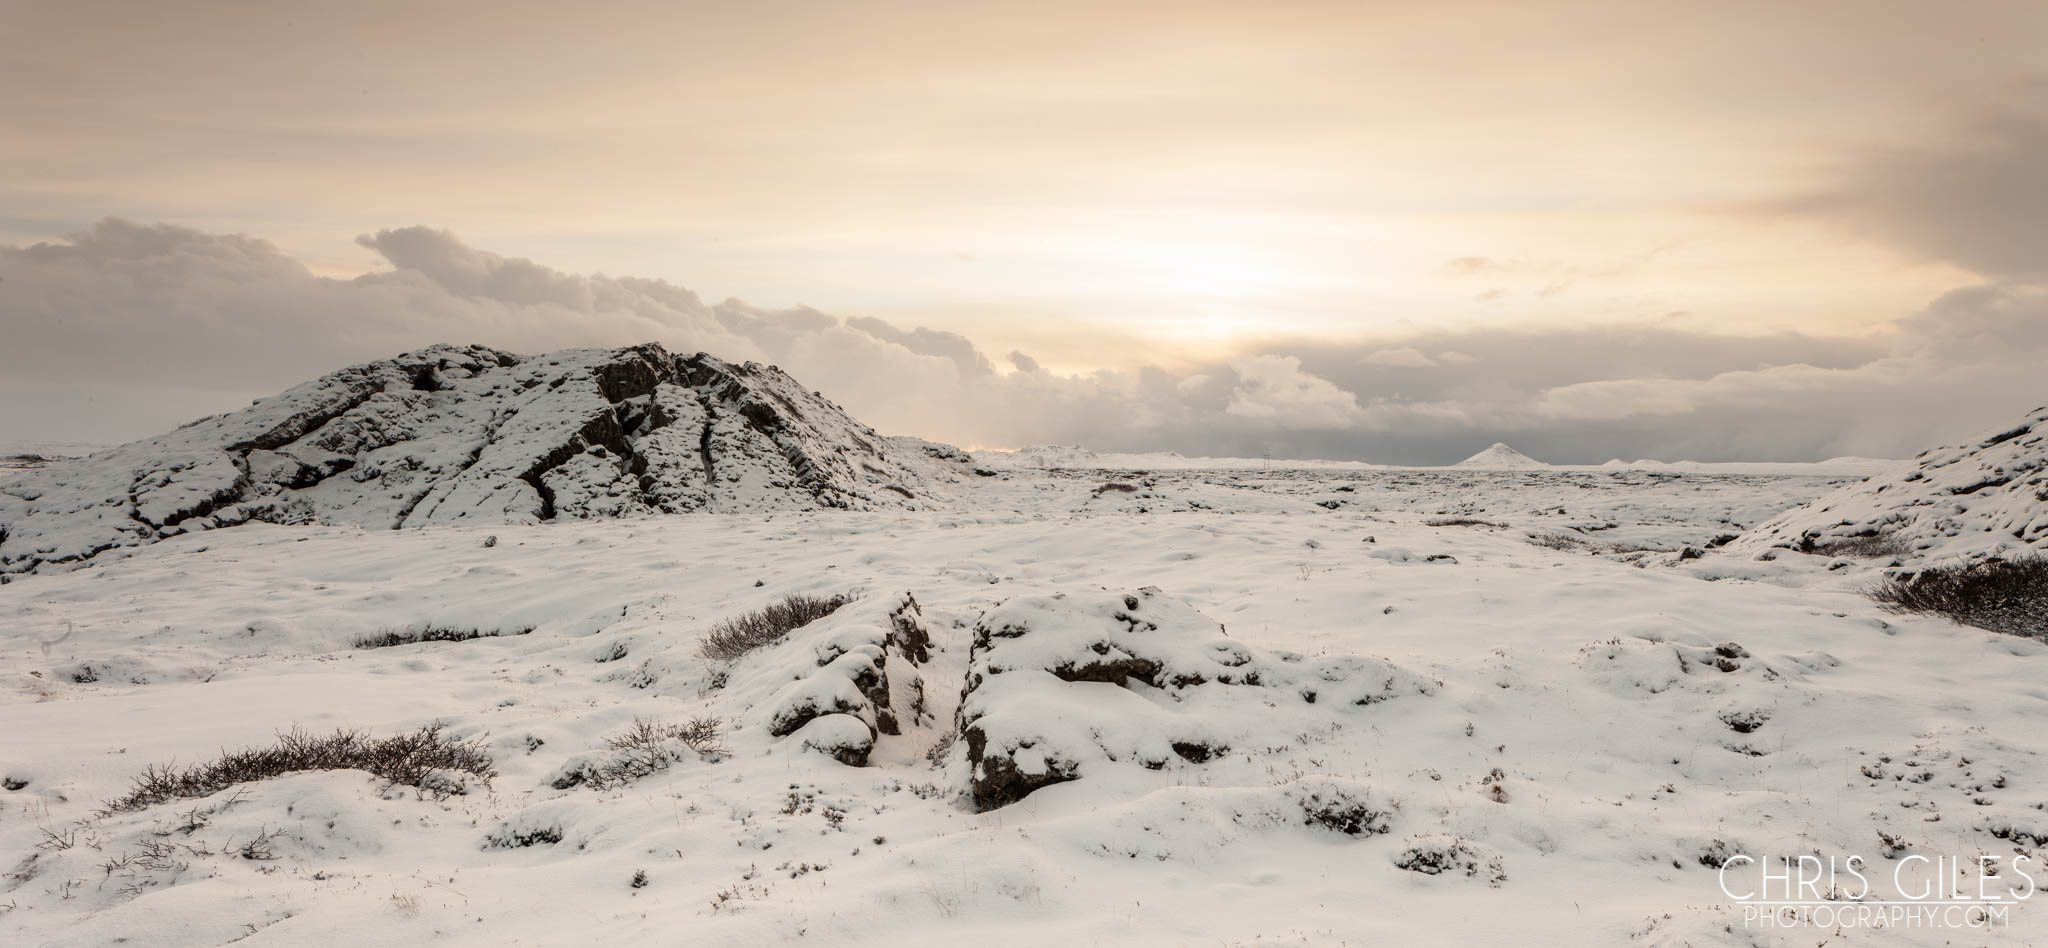 Snowfall in Iceland